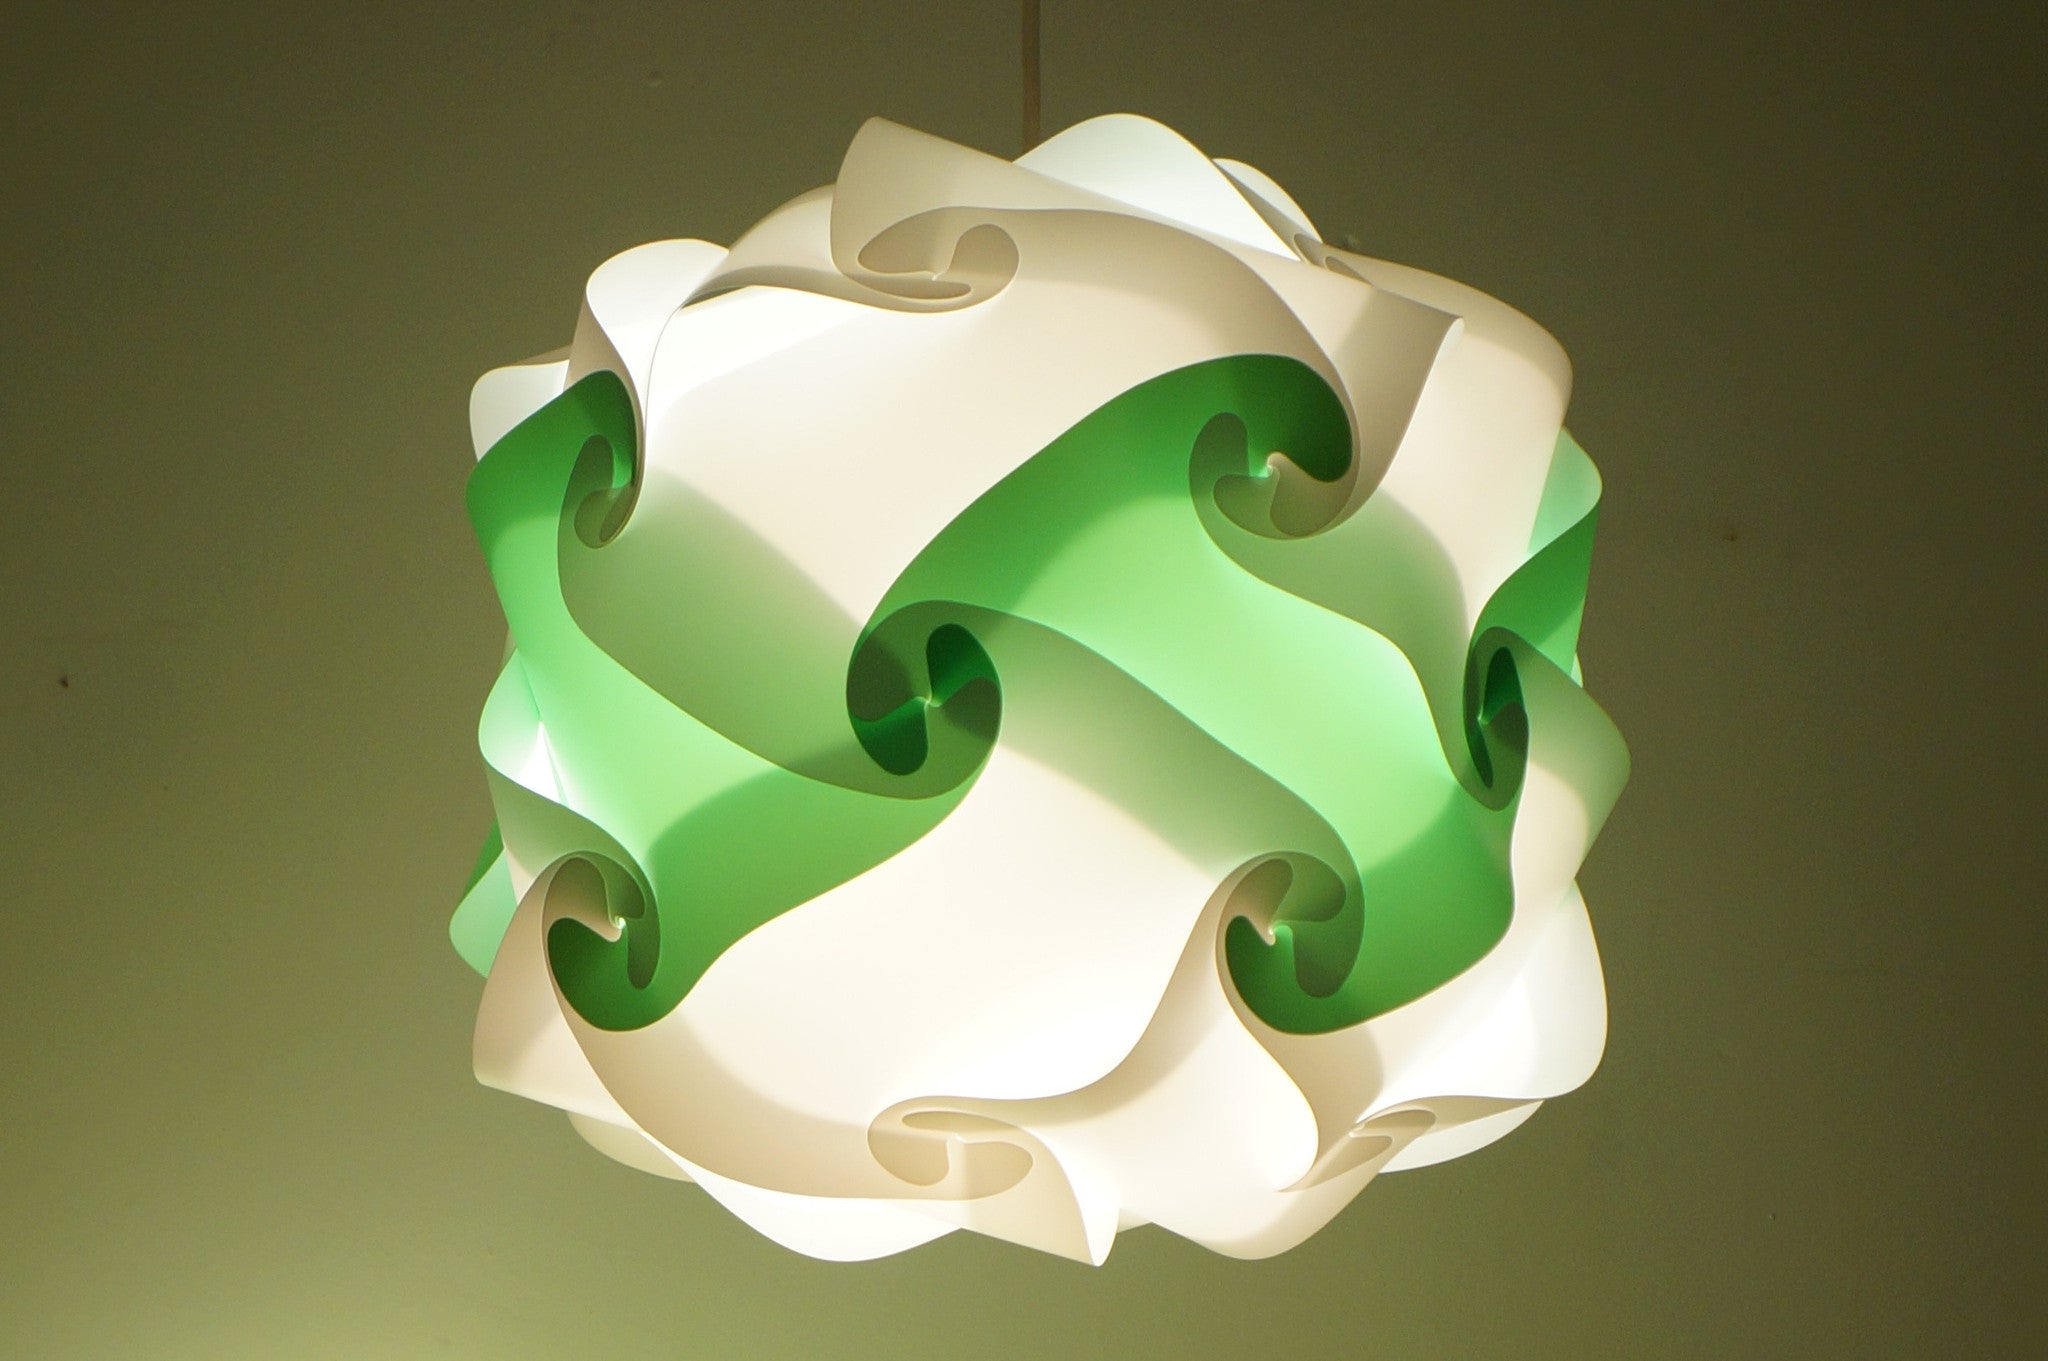 Smarty Lamps Lisbet Green Light Shade  Smart Deco Homeware Lighting and Art by Jacqueline hammond